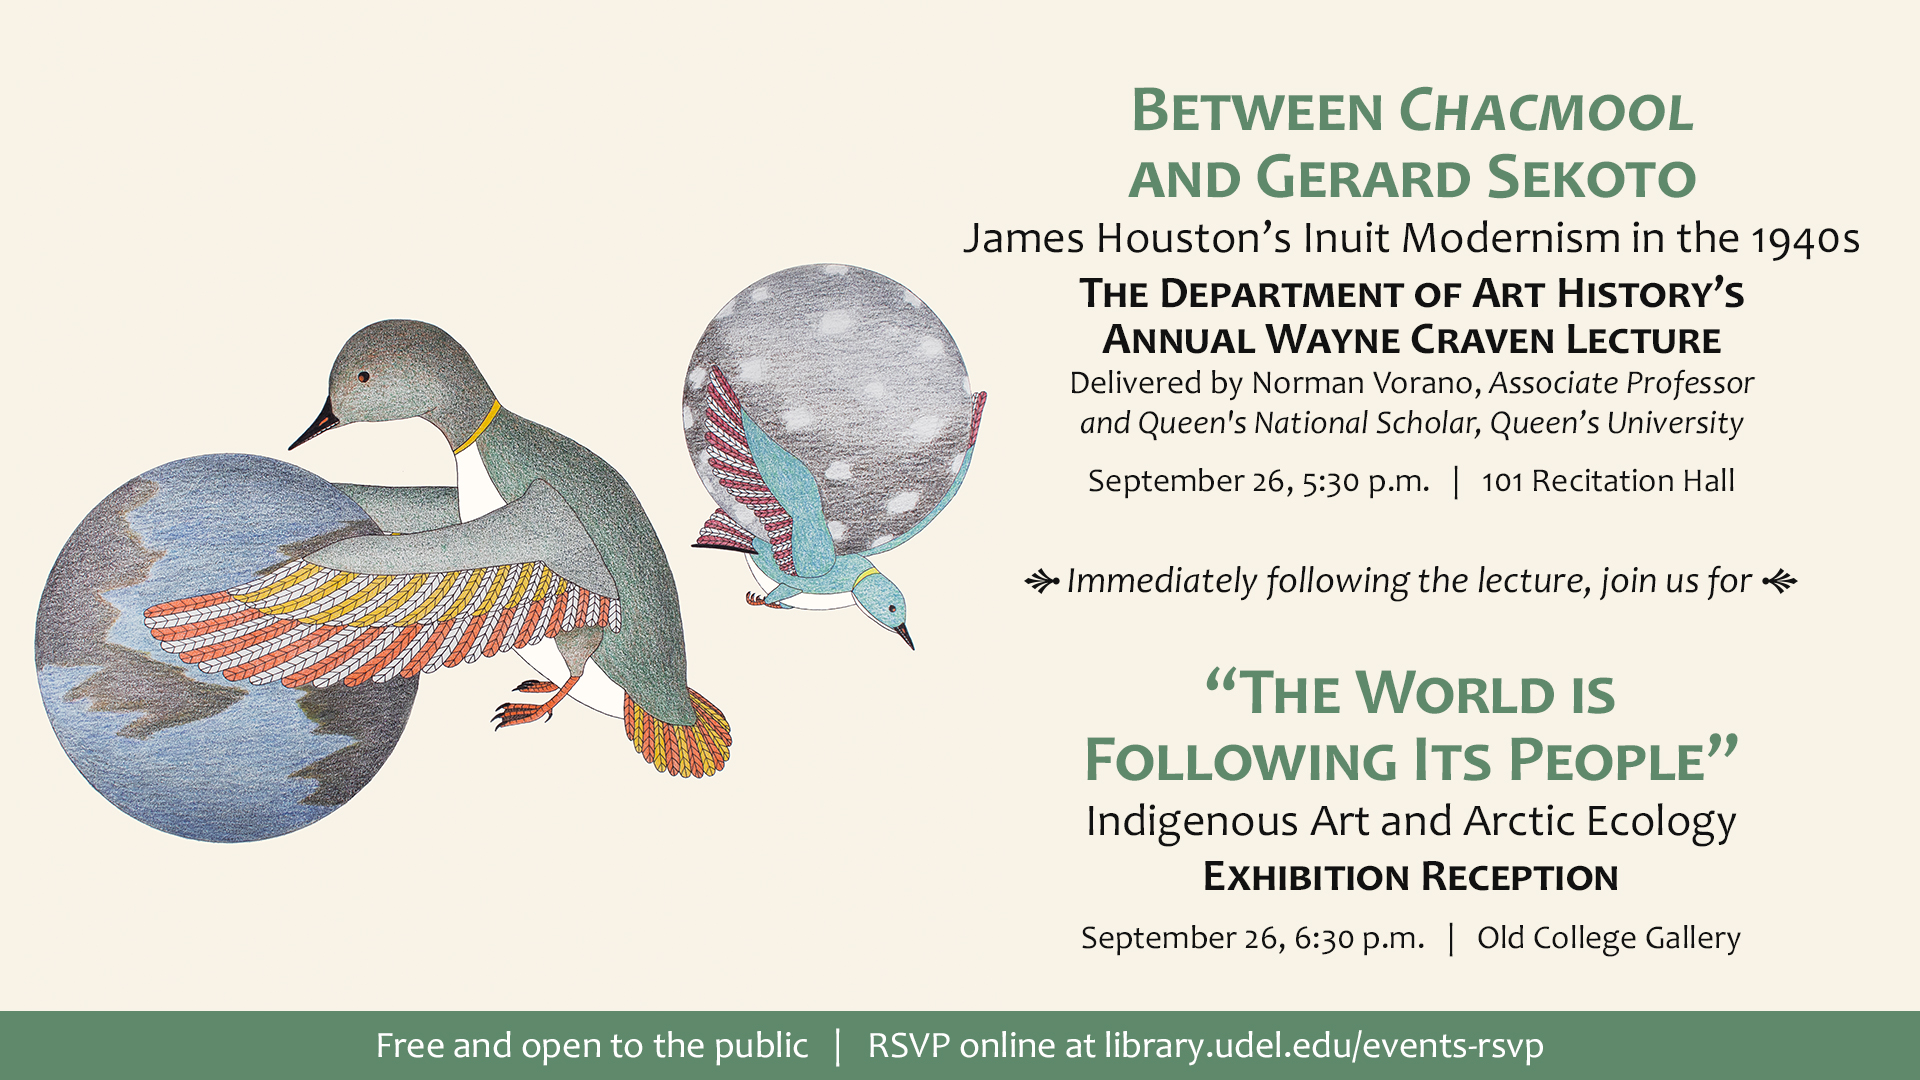 Between Chacmool and Gerard Sekoto: James Houston's Inuit Modernism in the 1940s